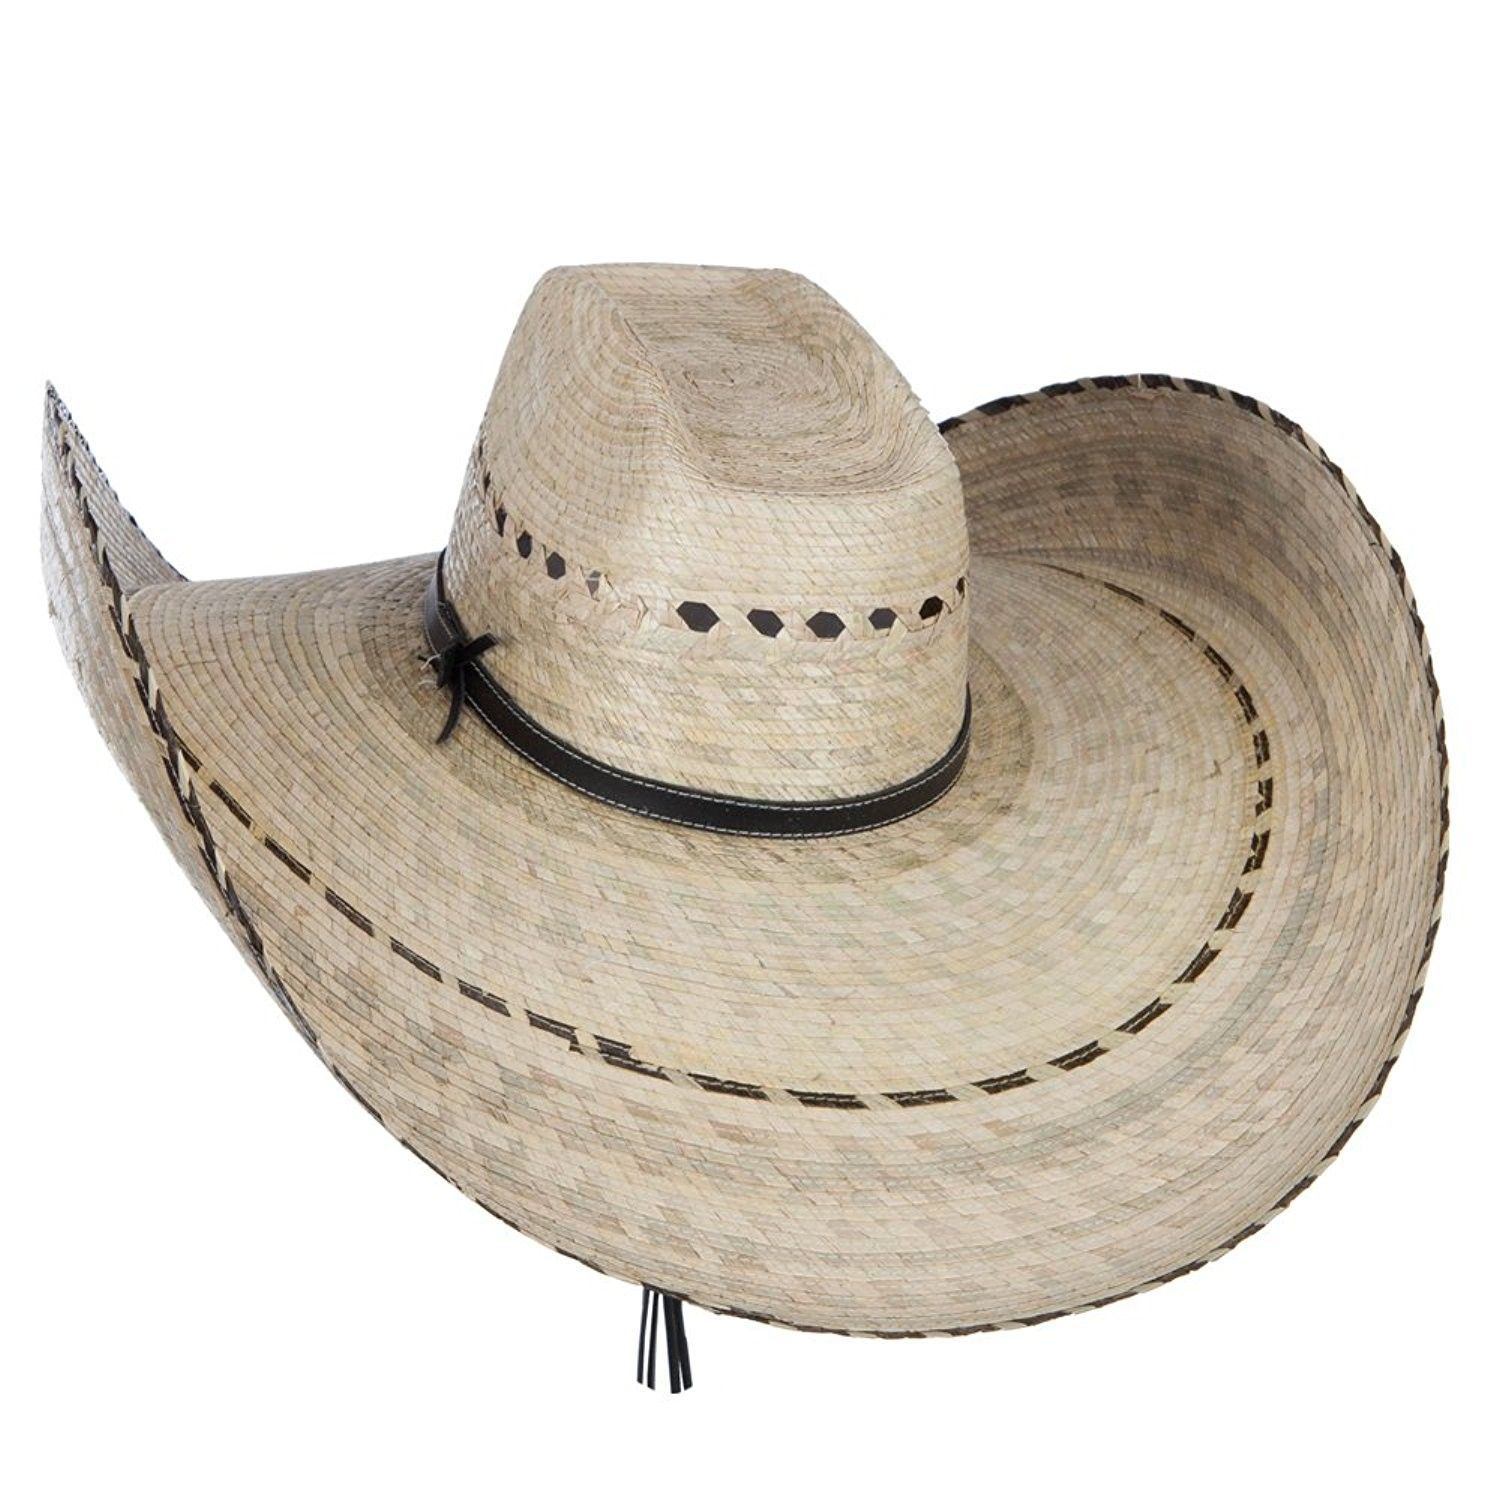 Mexican Style Wide Brim Straw Hat - Natural - CL12FV92YGJ - Hats   Caps 37a21bcf088